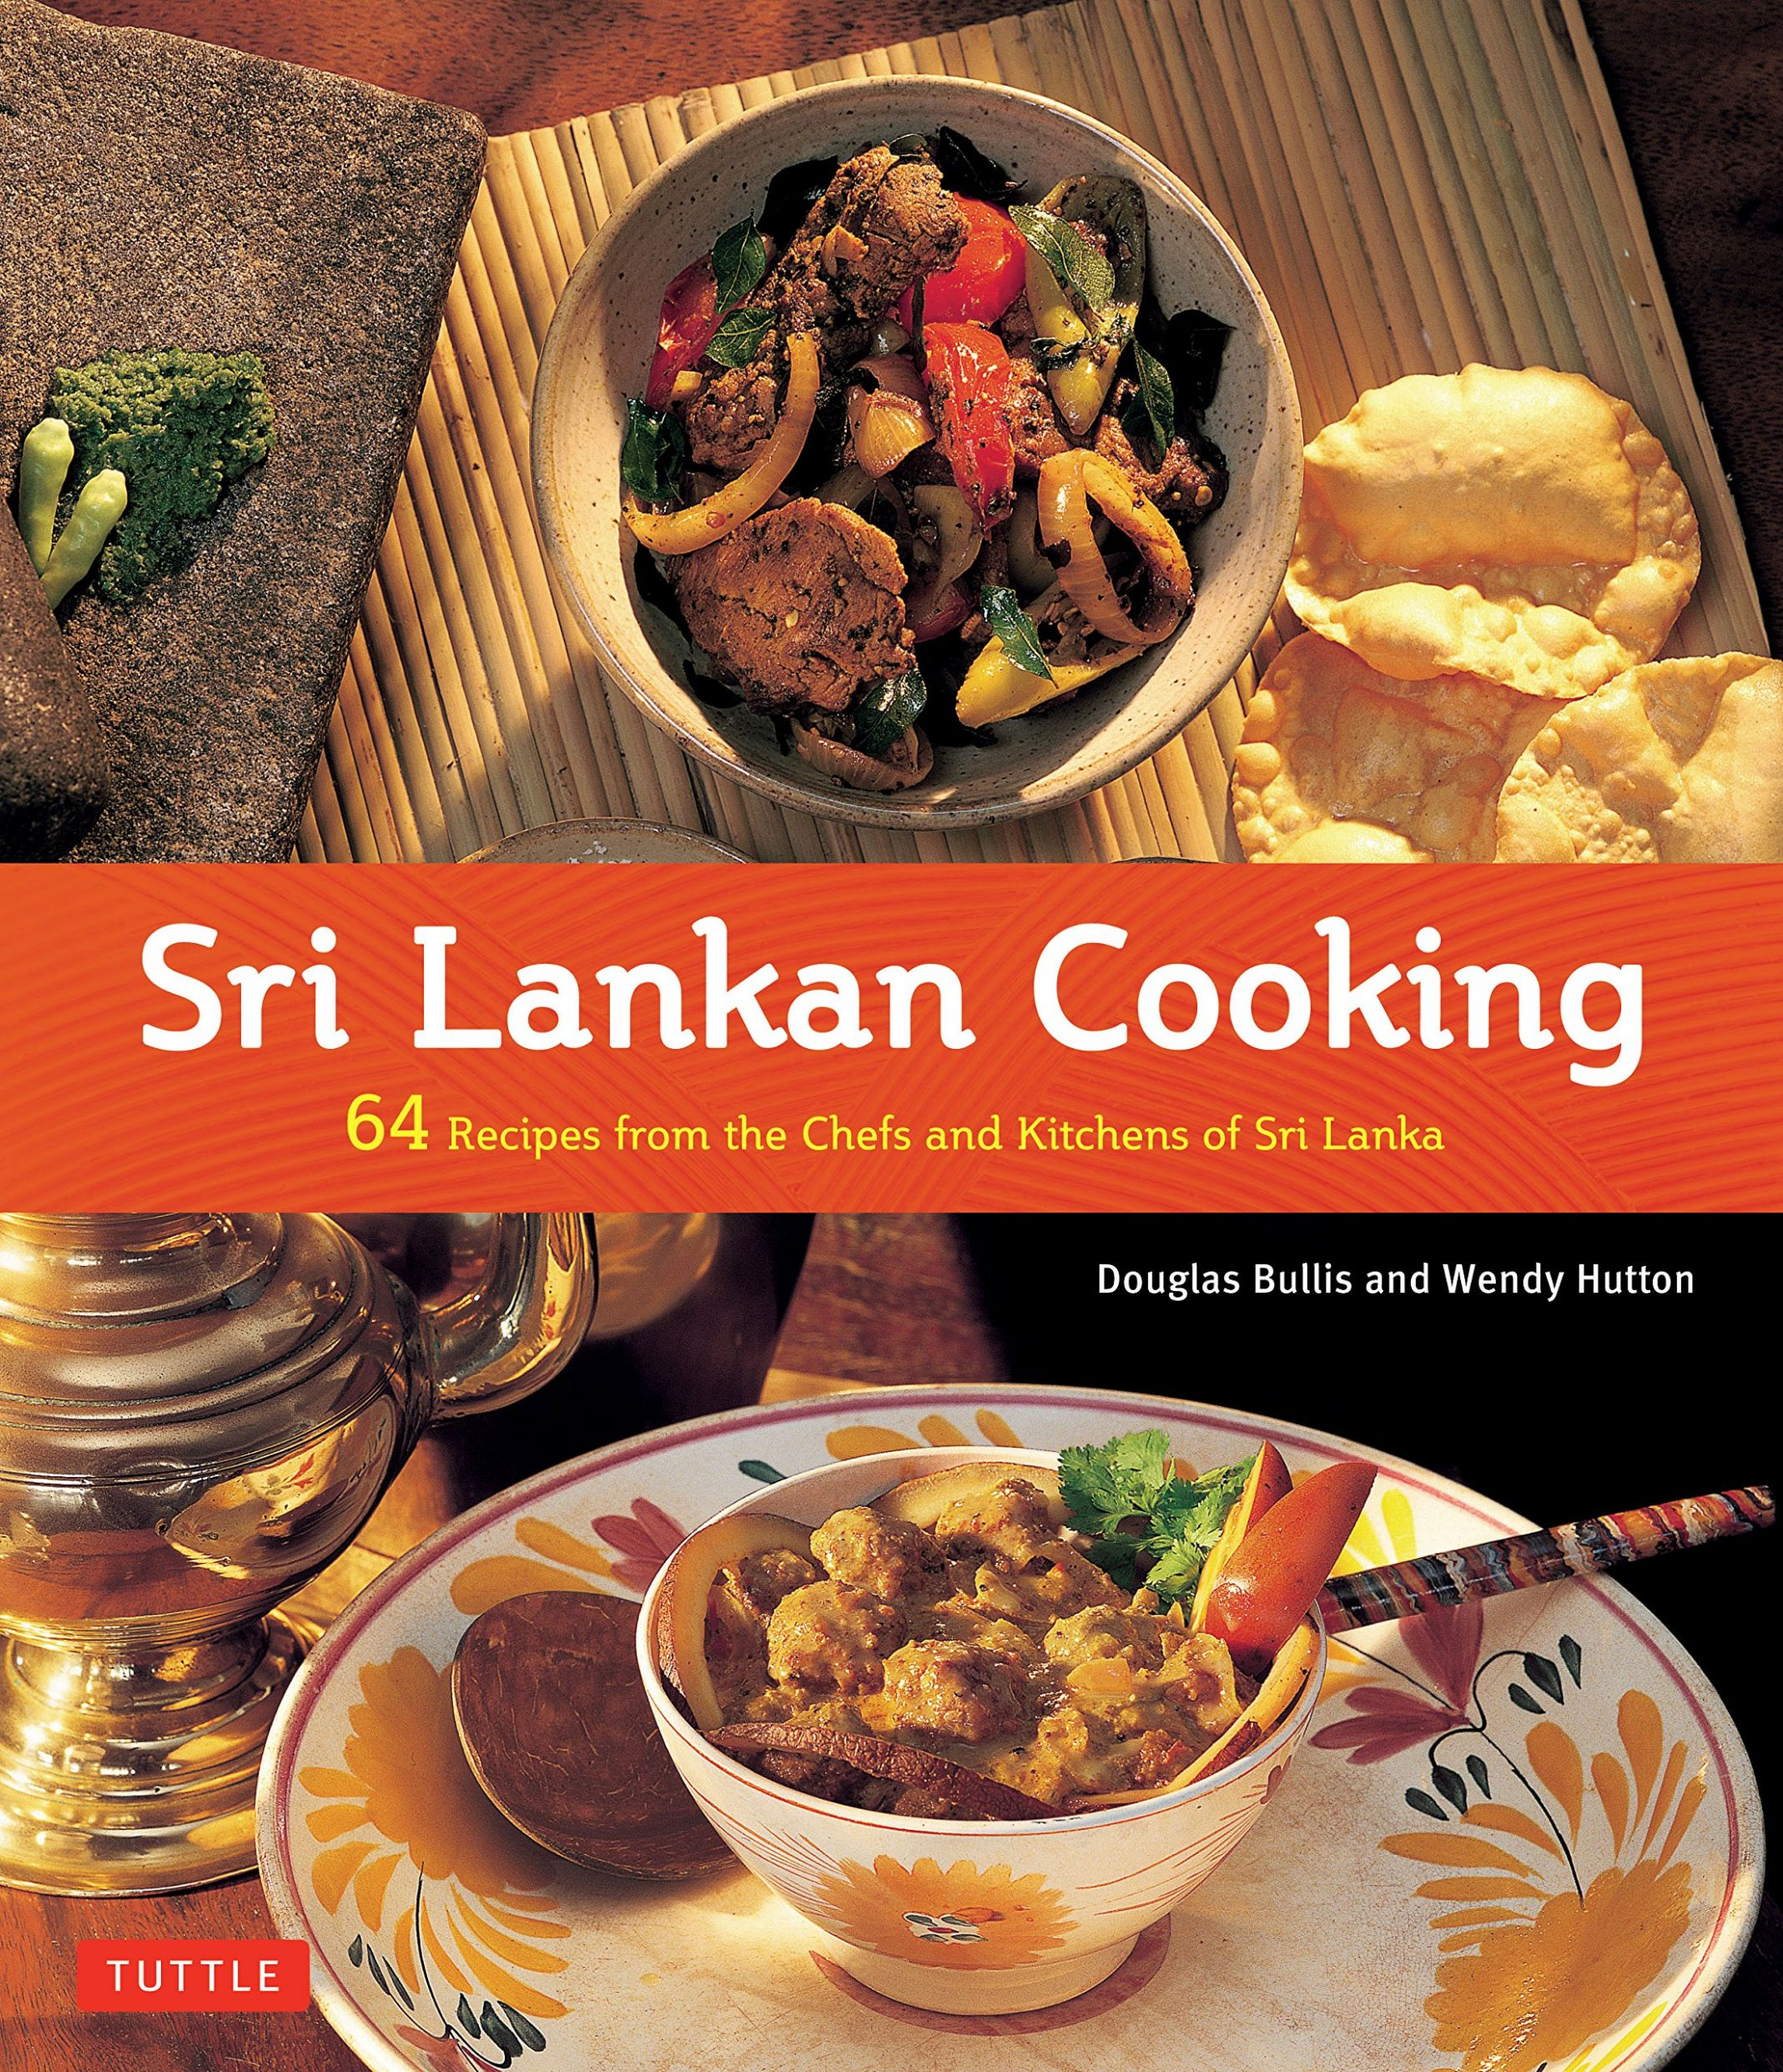 Sri Lankan Cooking: 10 Recipes from the Chefs and Kitchens of Sri ..